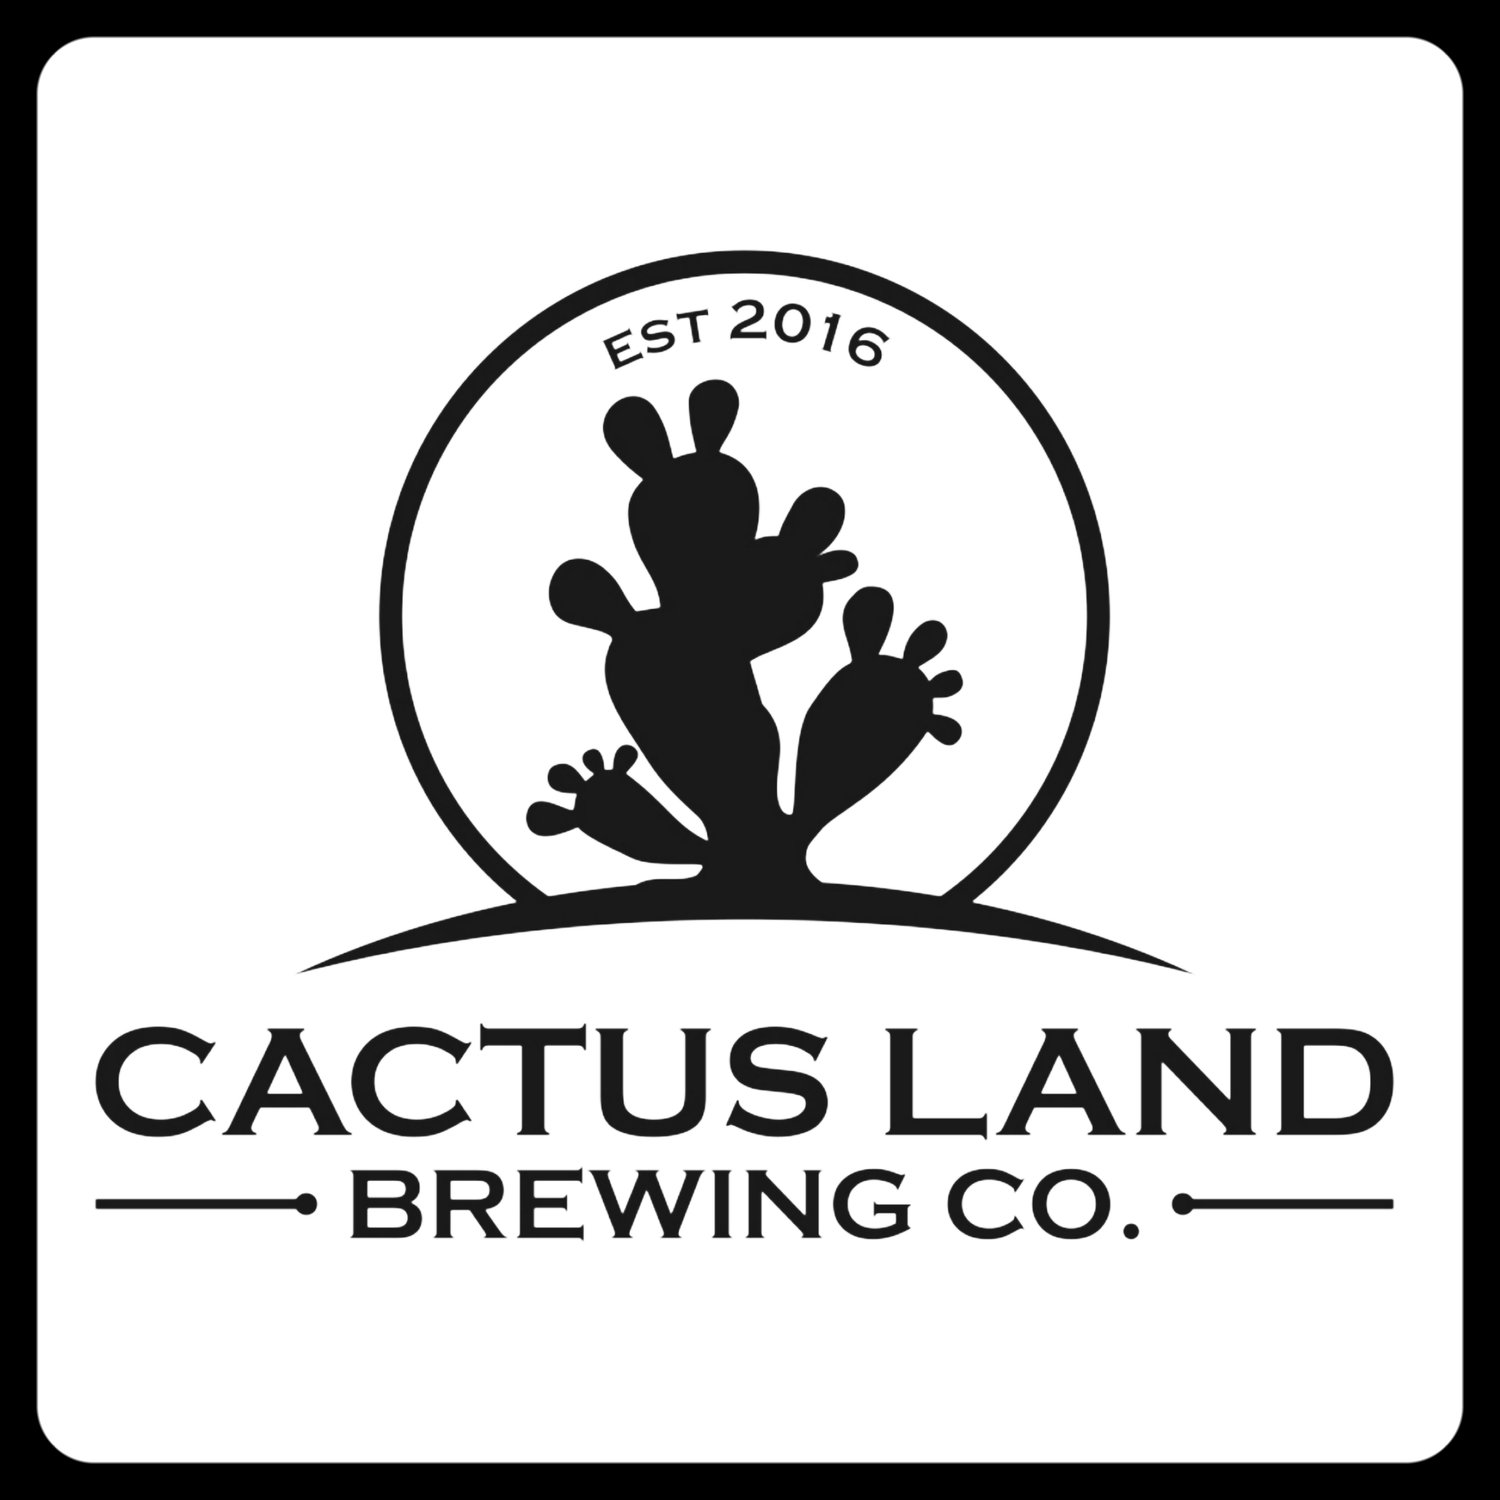 Cactus Land Brewing Co.